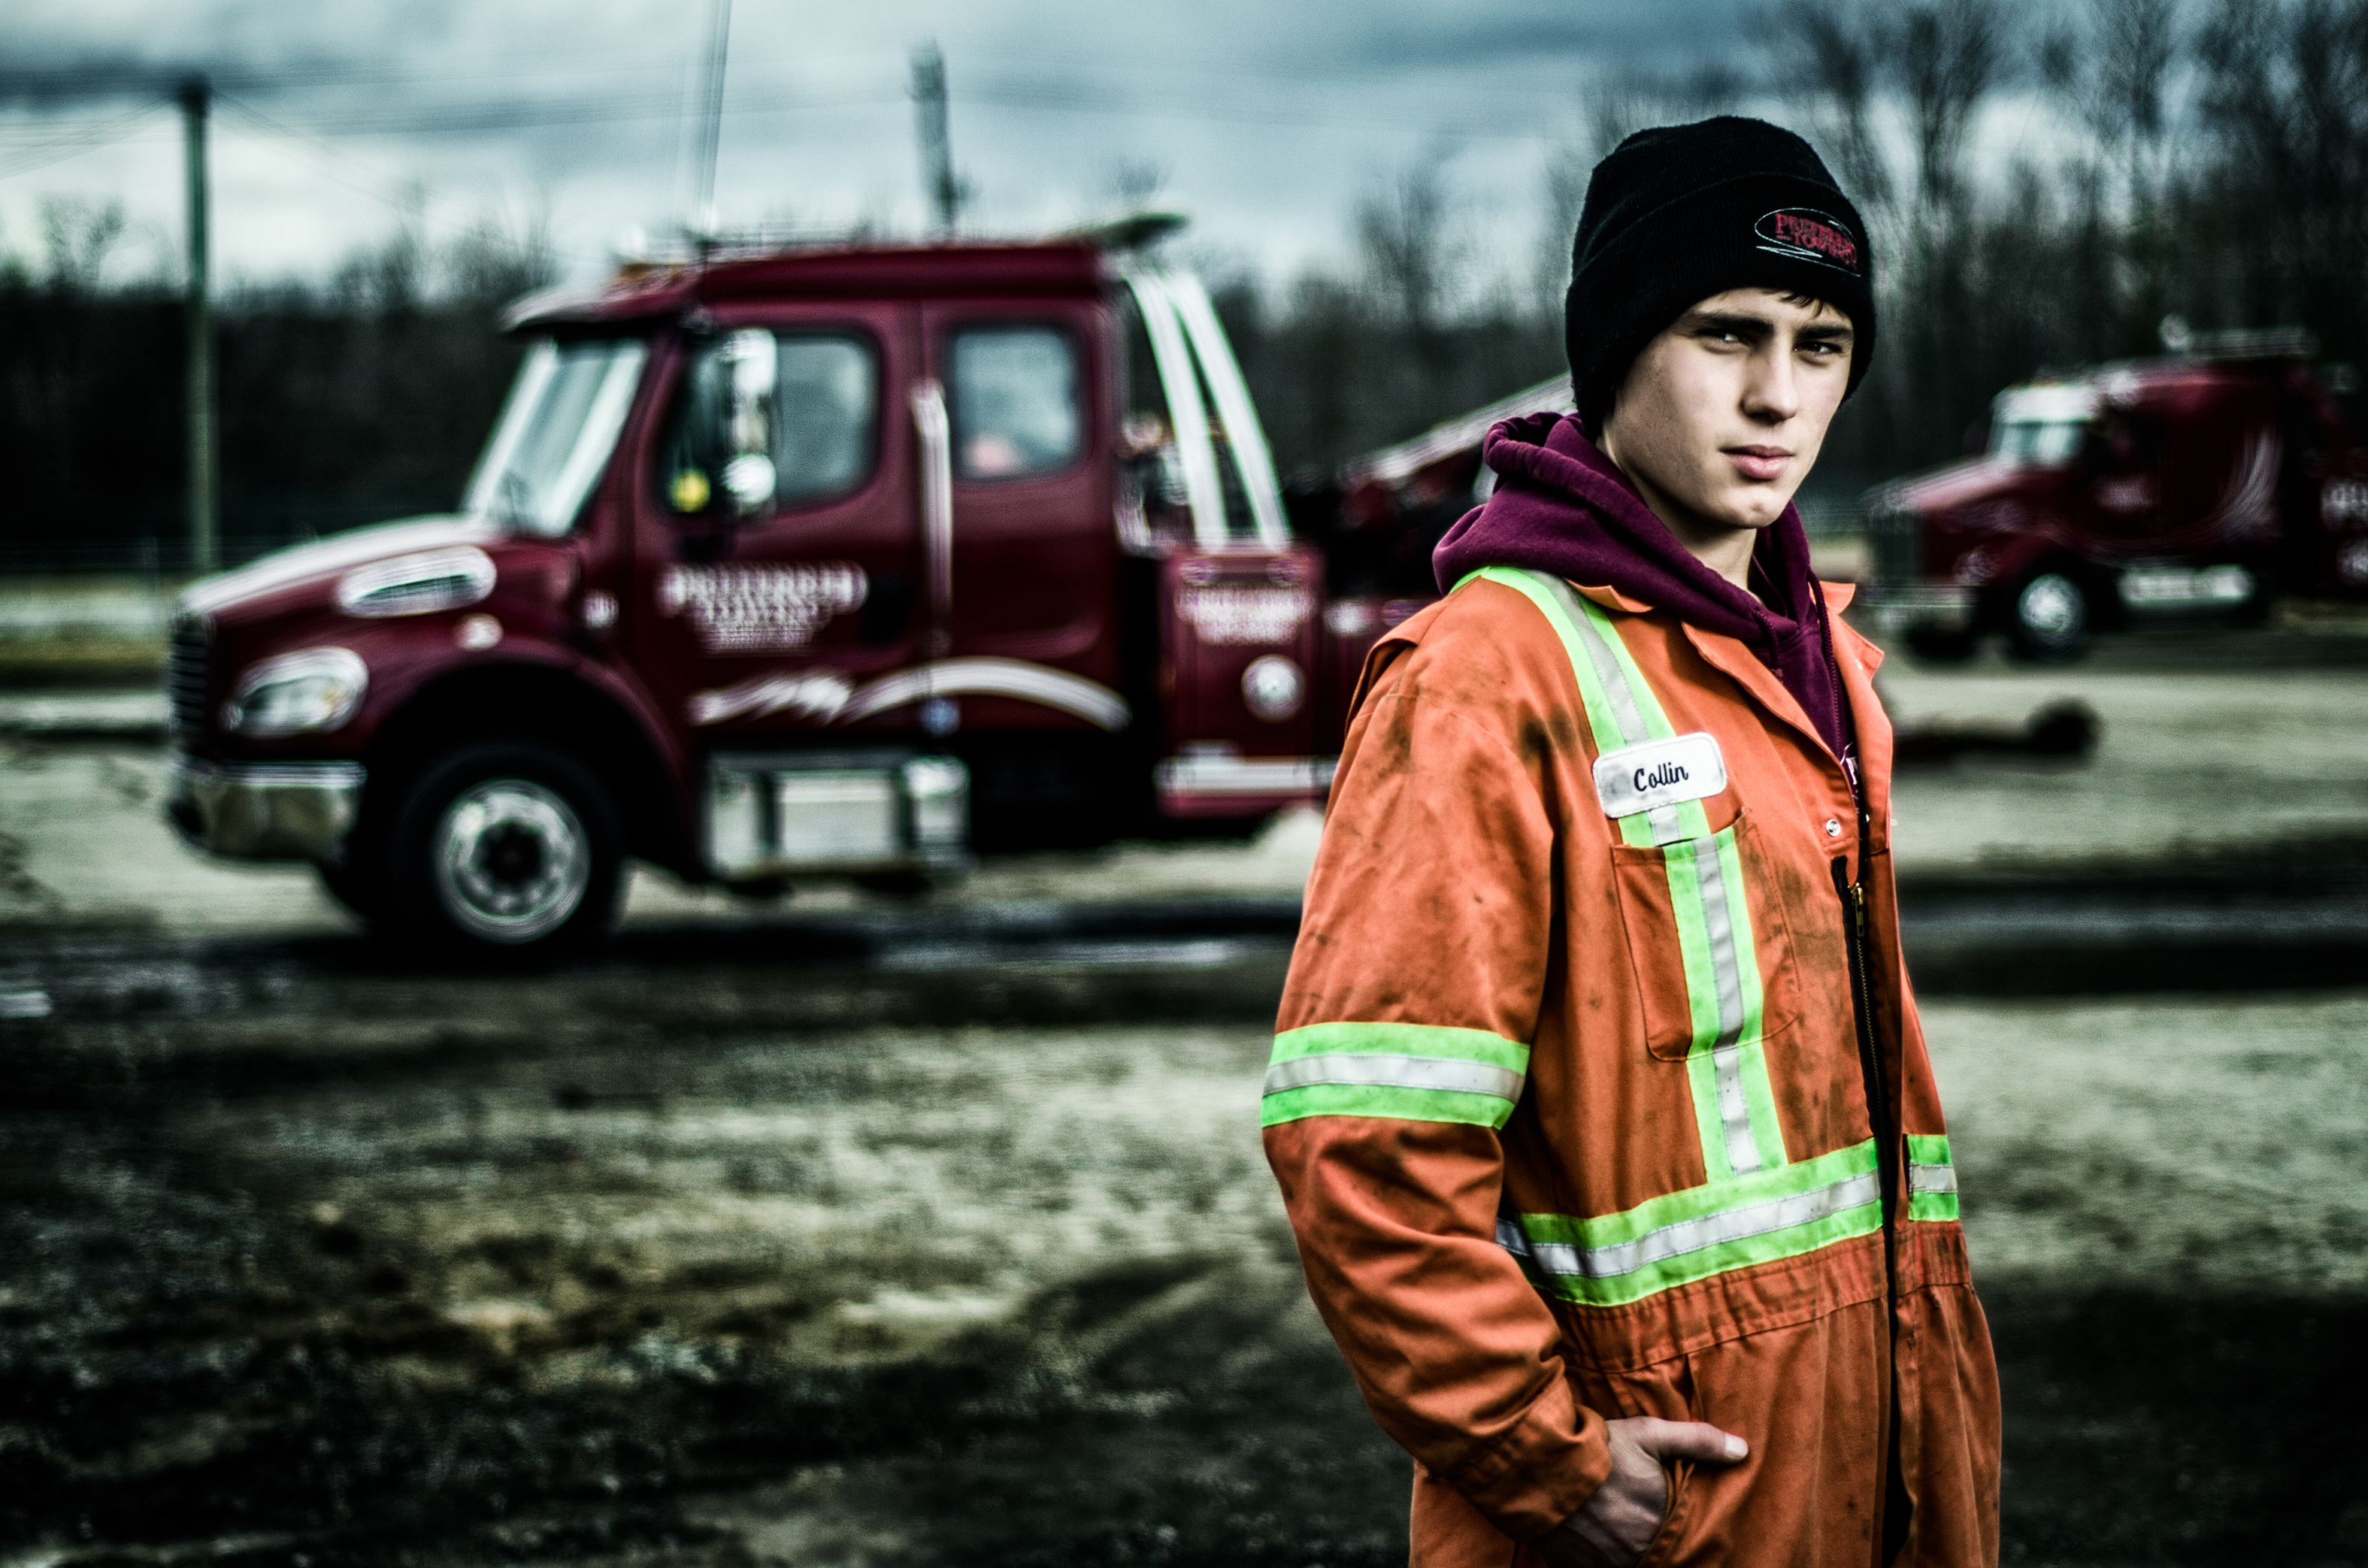 Collin Vandenheuvel and his workmates at Preferred Towing appear in the first episode of Heavy Rescue: 401, airing Oct. 10 on the Discovery Channel. Brett Morris photo, www.BrettM.com